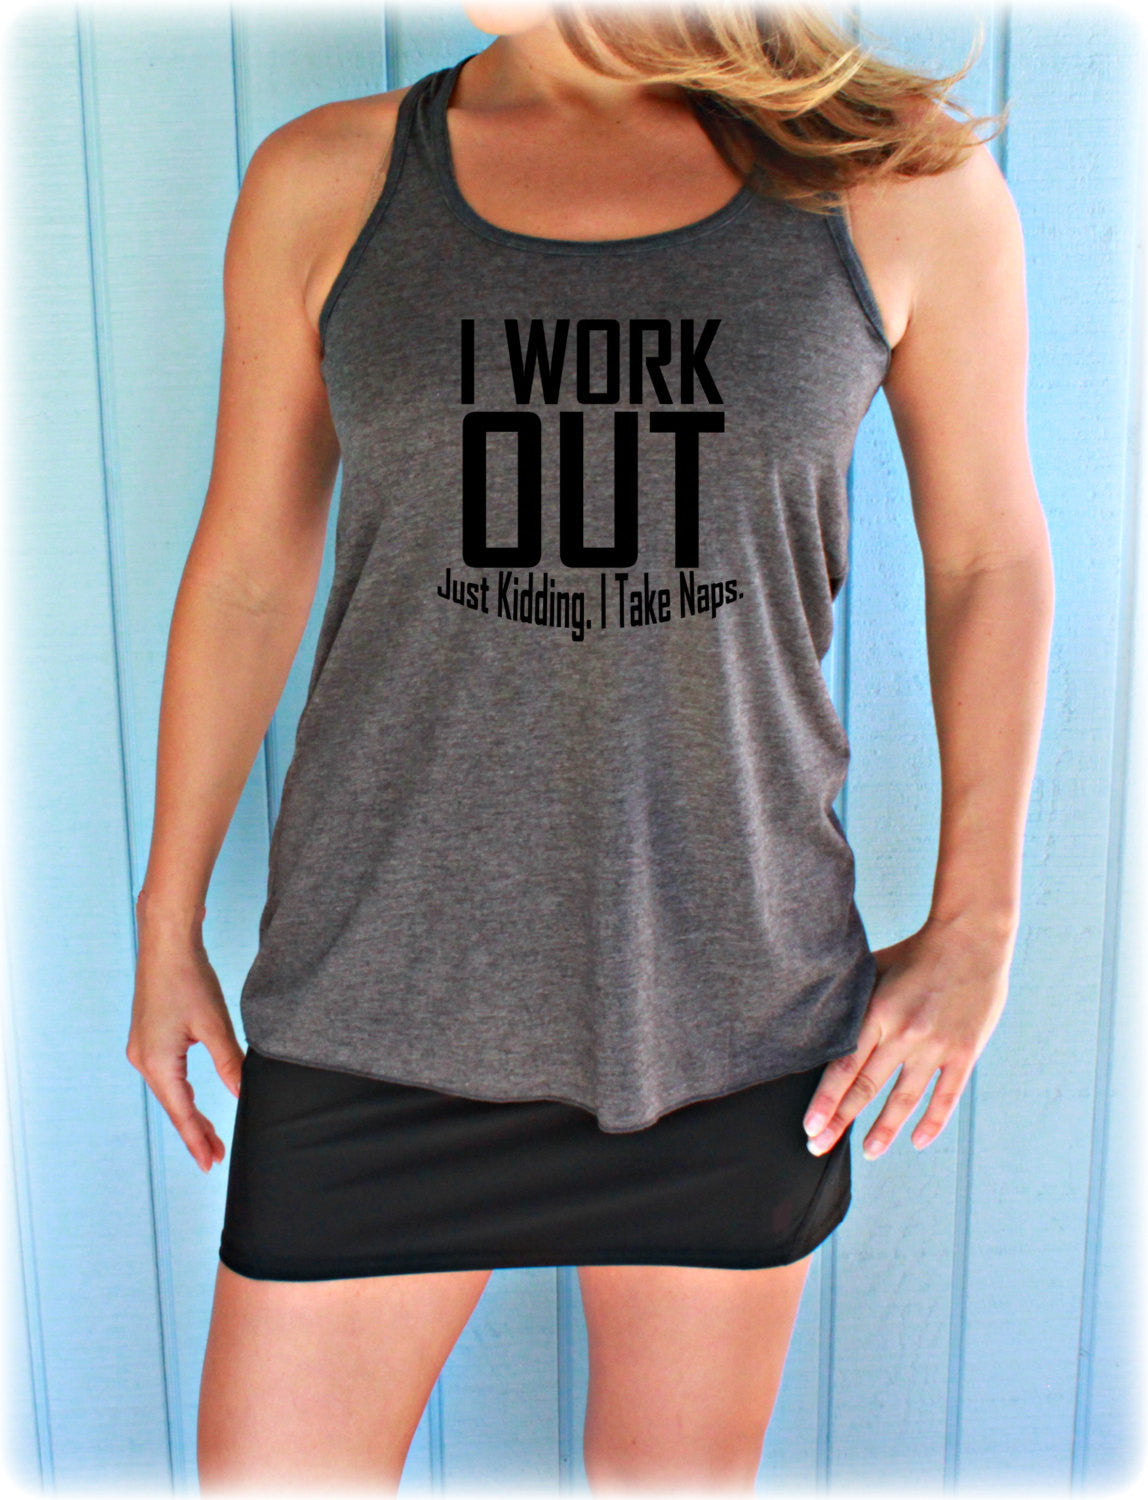 9e8673f56 Womens Motivational Workout Tank Top. Fitness Motivation. I Workout. Just  Kidding I Take